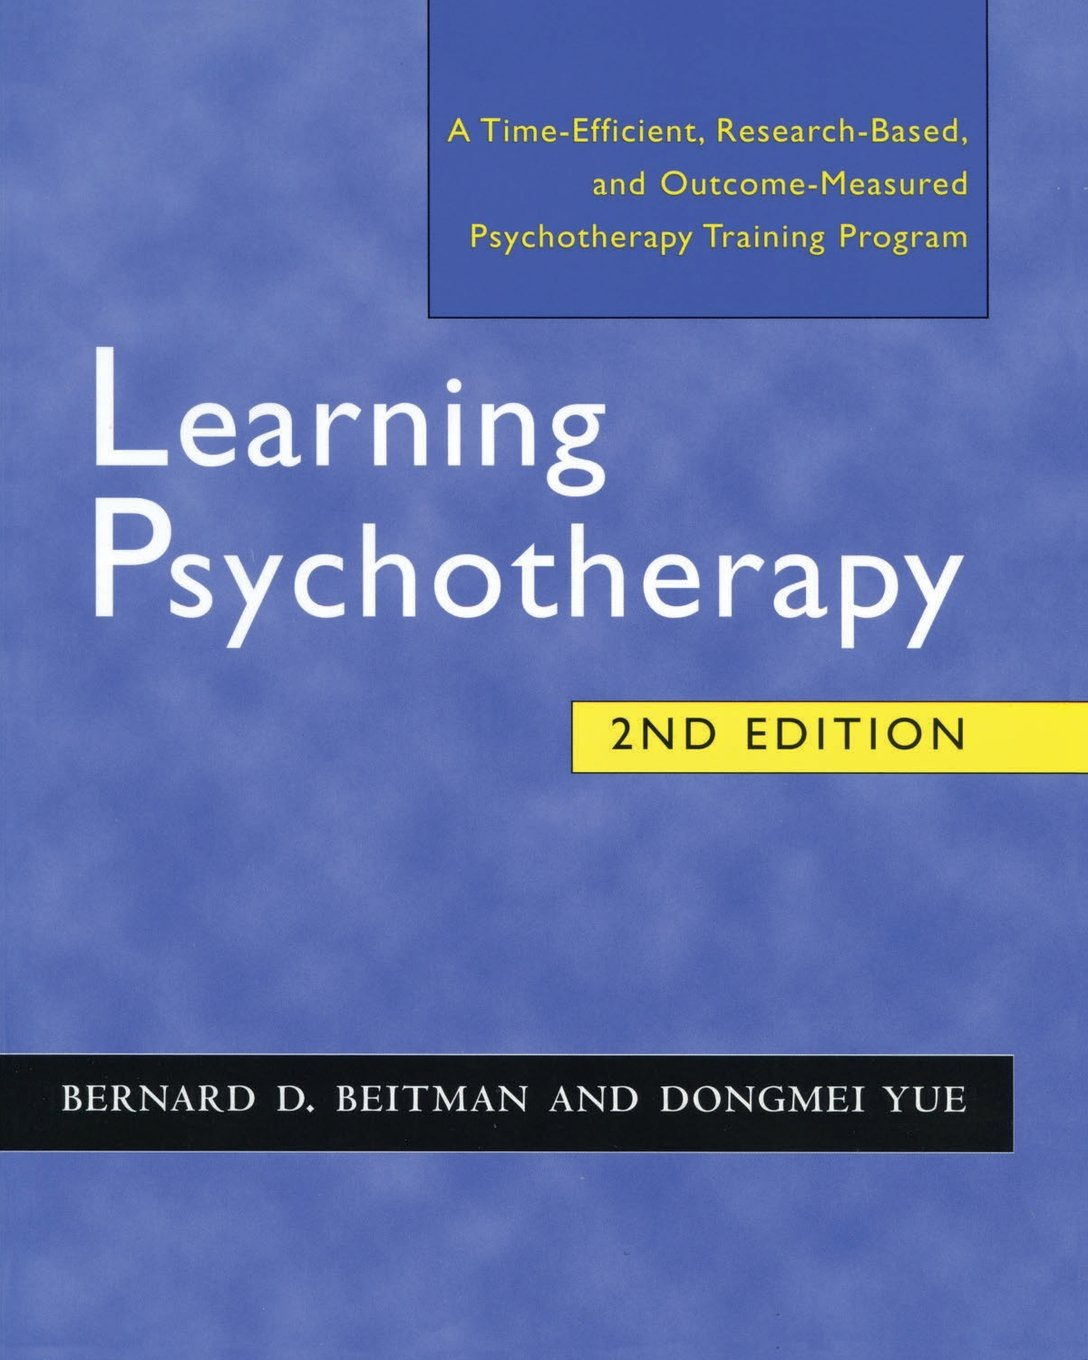 Learning Psychotherapy. Second Edition ebook